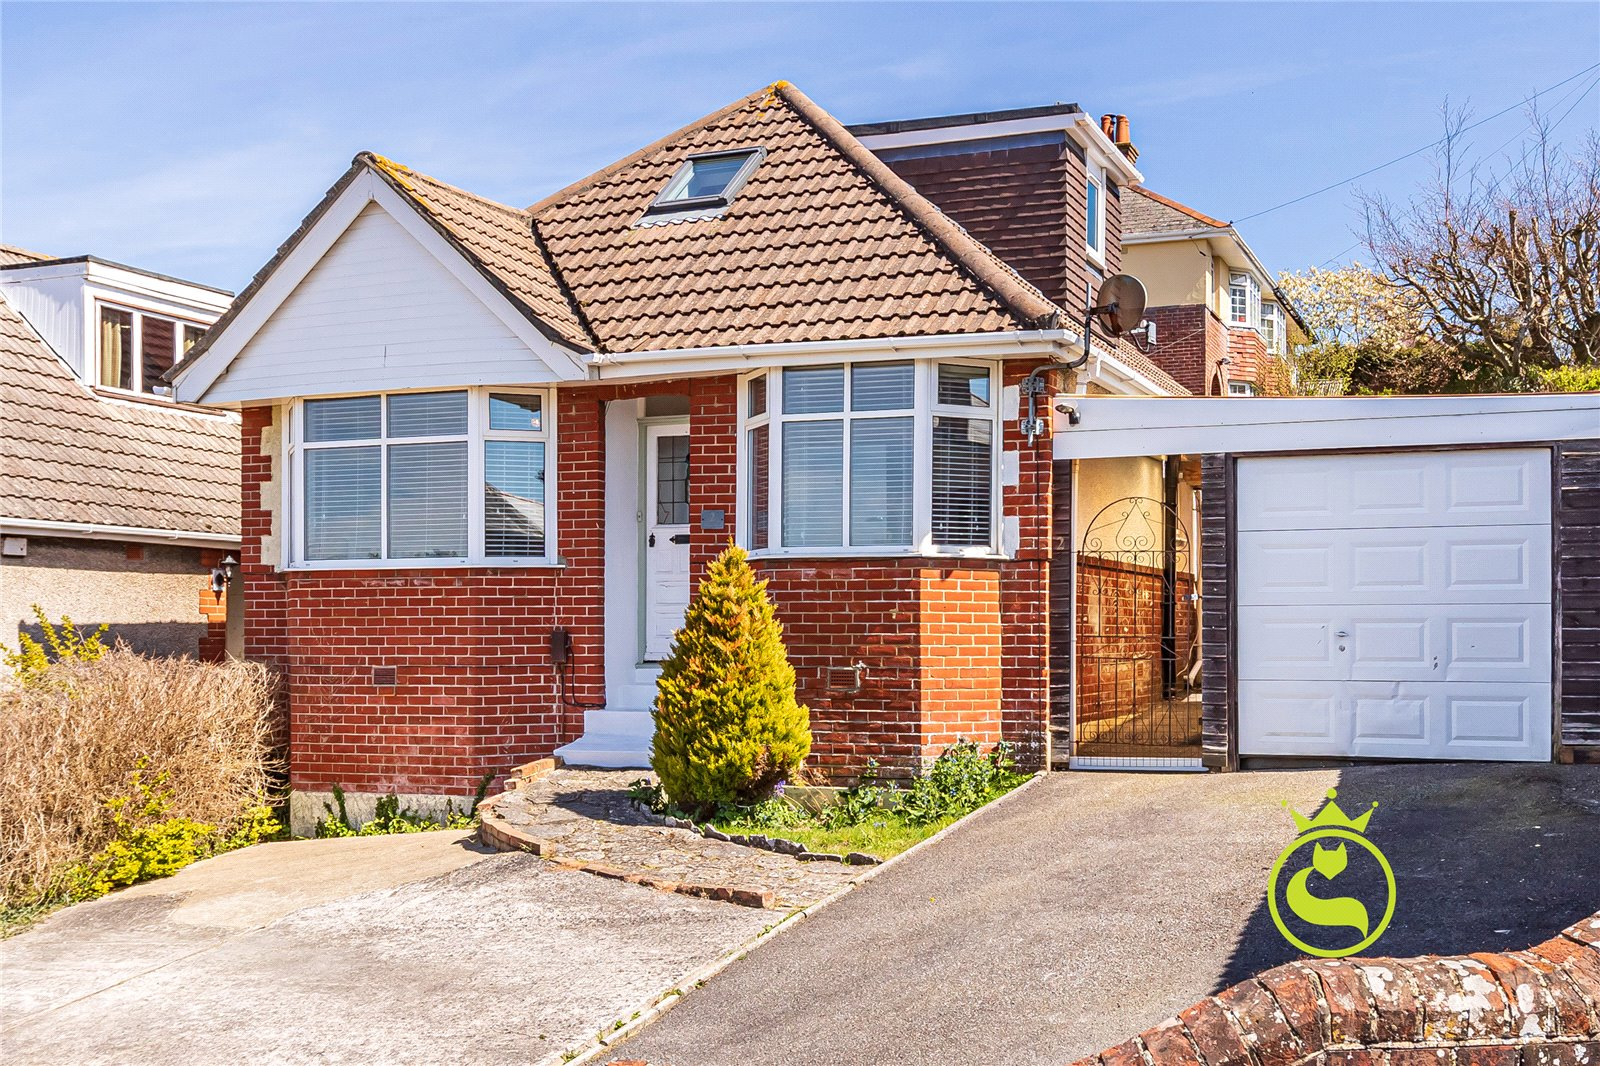 4 bed bungalow for sale in Linden Road, Parkstone, BH12